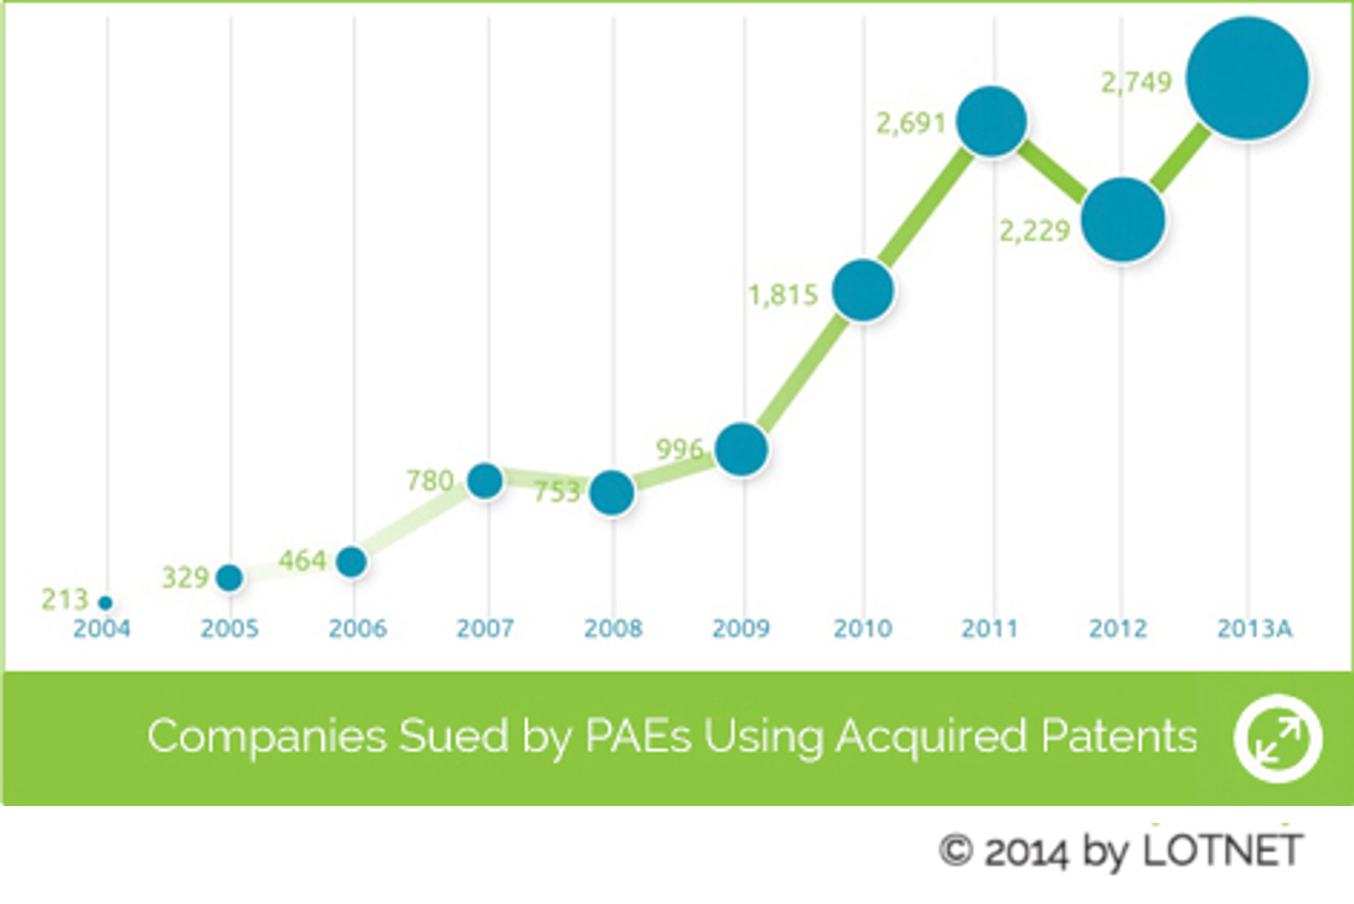 Companies Sued by PAEs Using Acquired Patents